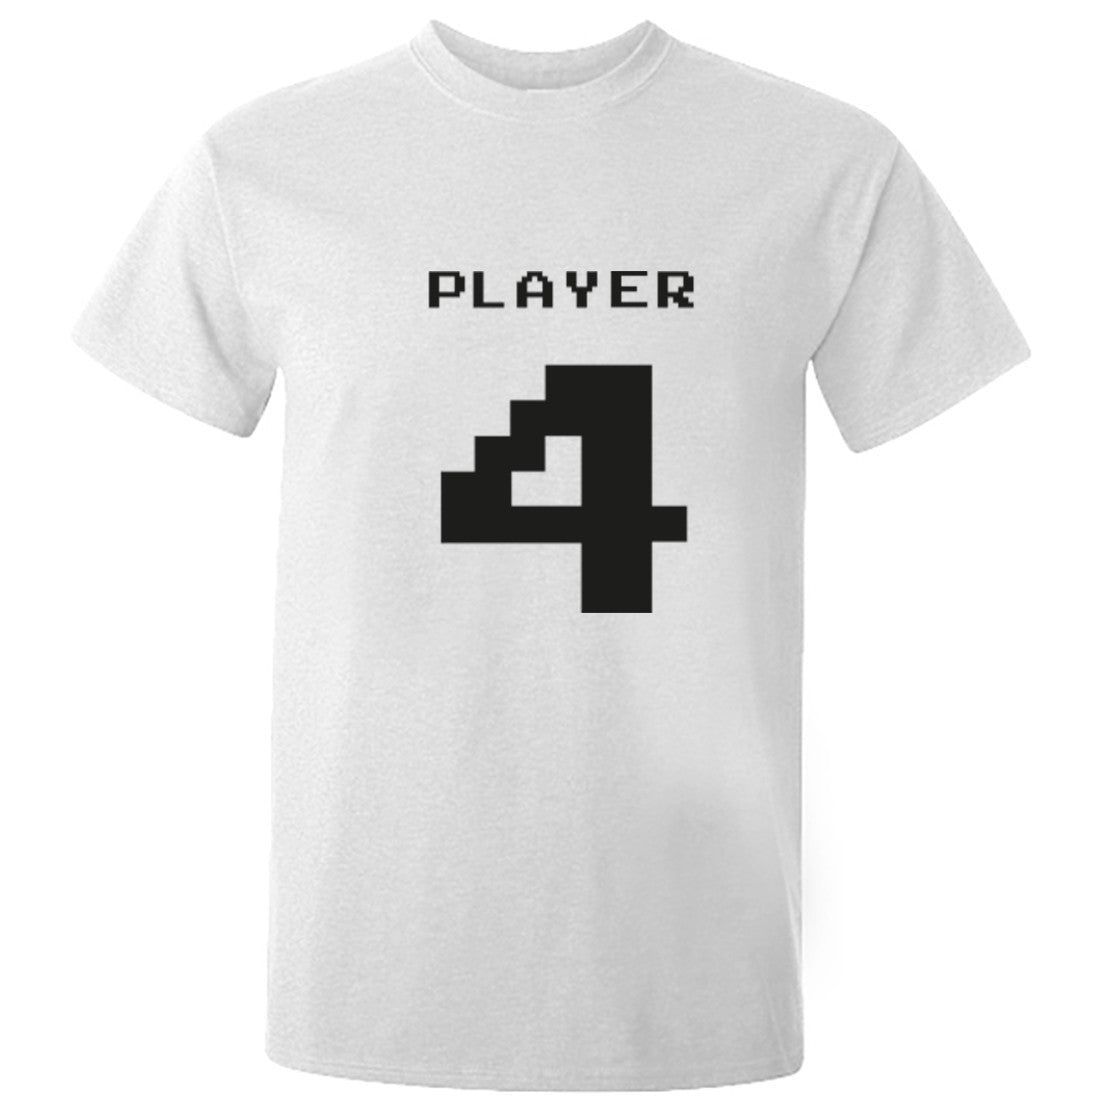 Player 4 Unisex Fit T-Shirt K0547 - Illustrated Identity Ltd.